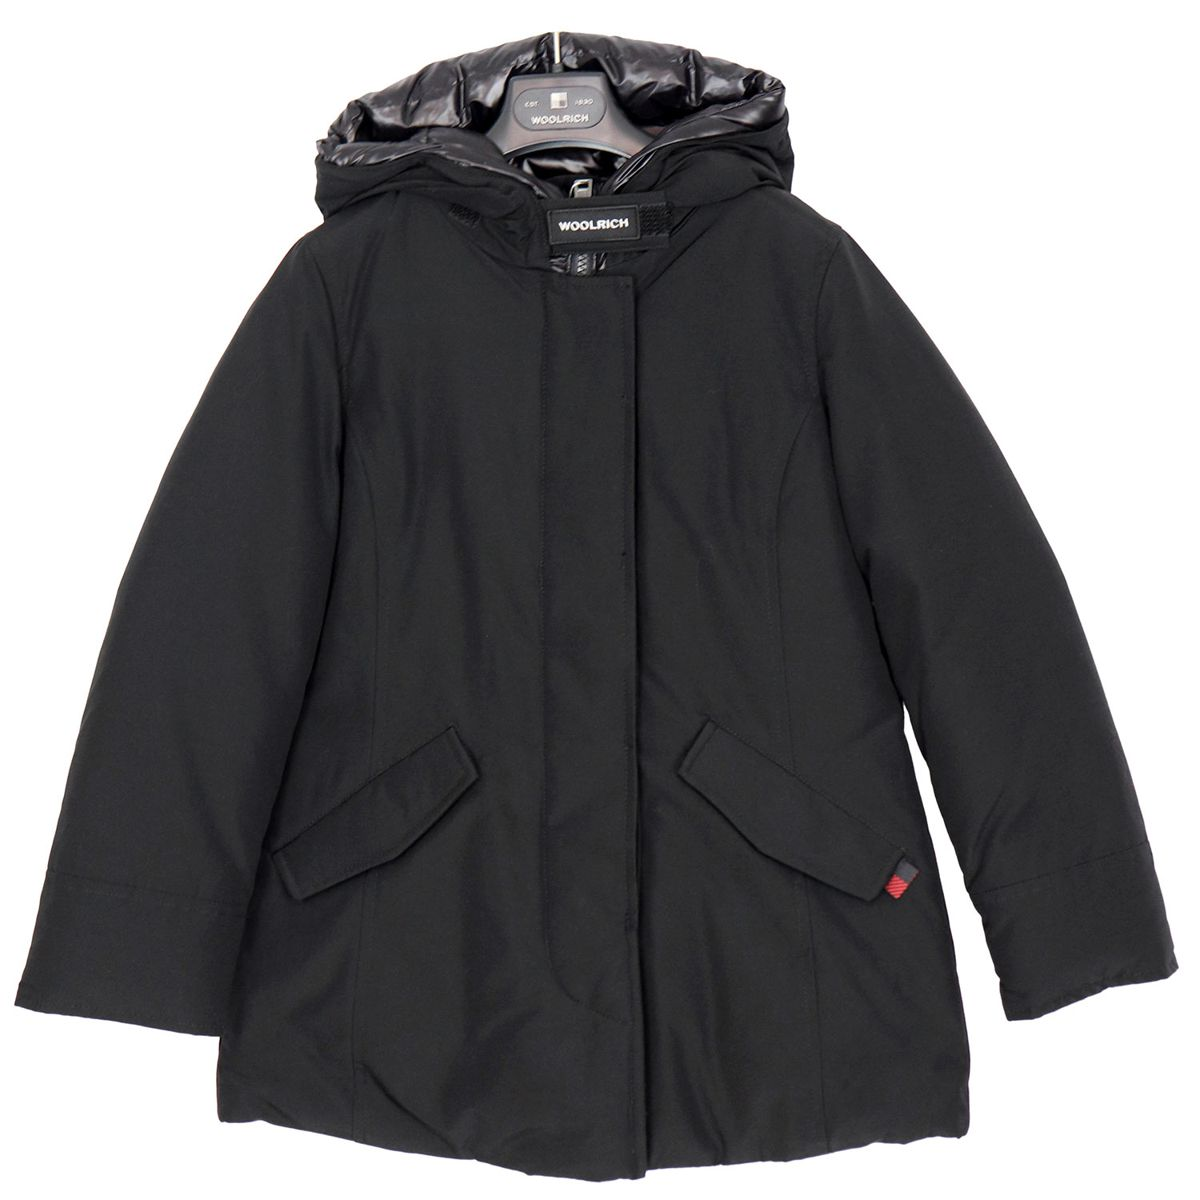 Artic parka with quilted hood Black Woolrich